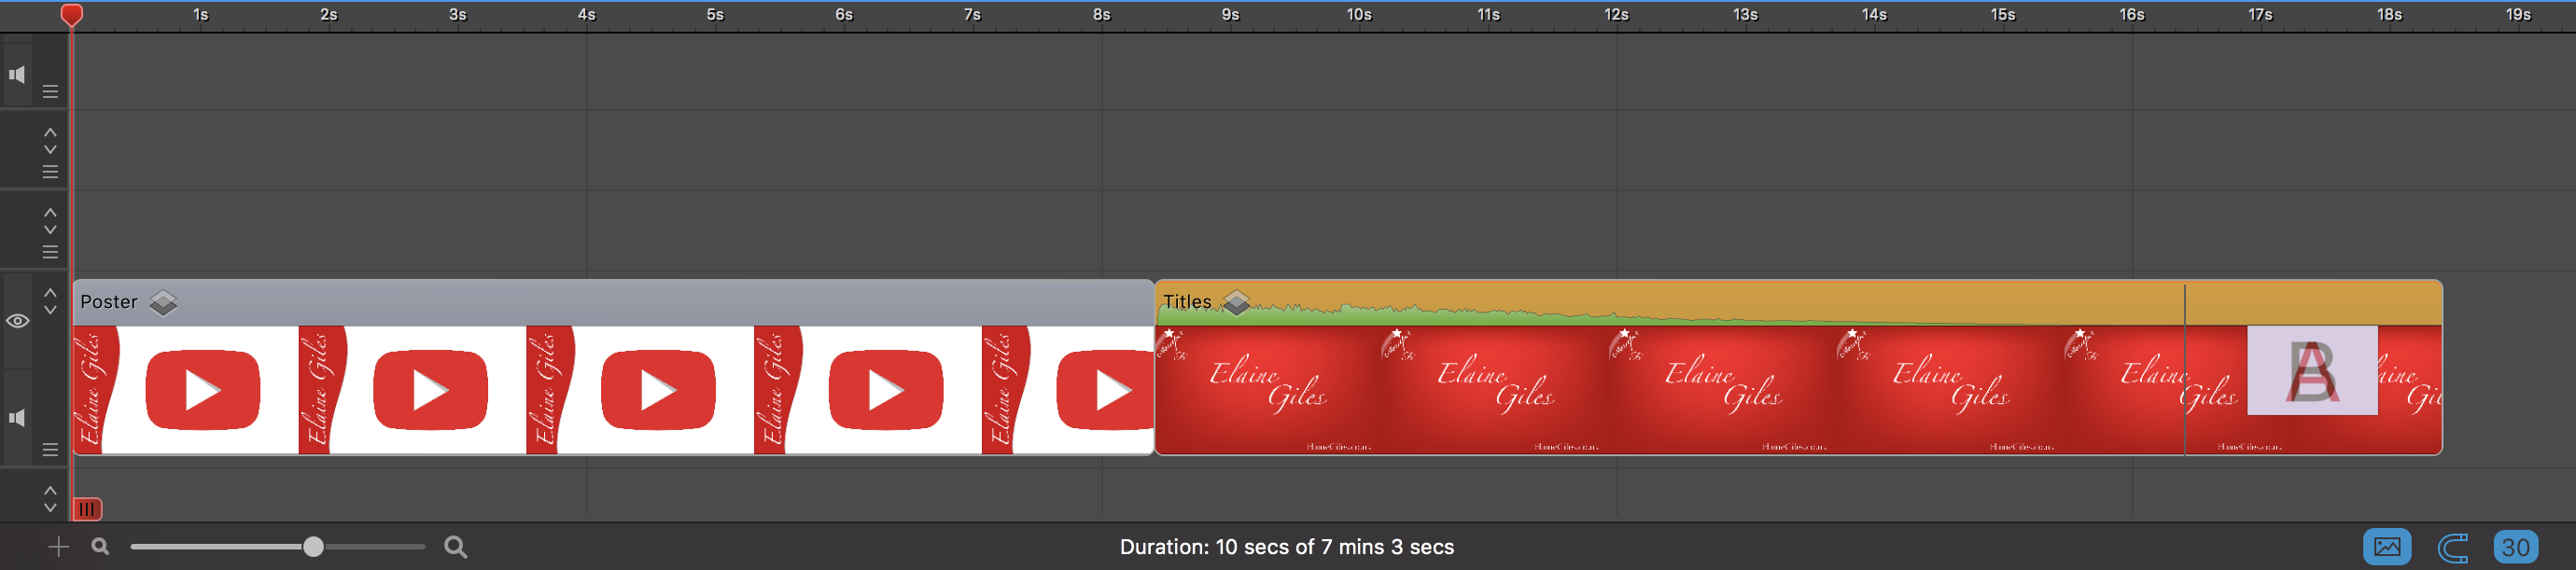 ScreenFlow 8 Timeline Thumbnails